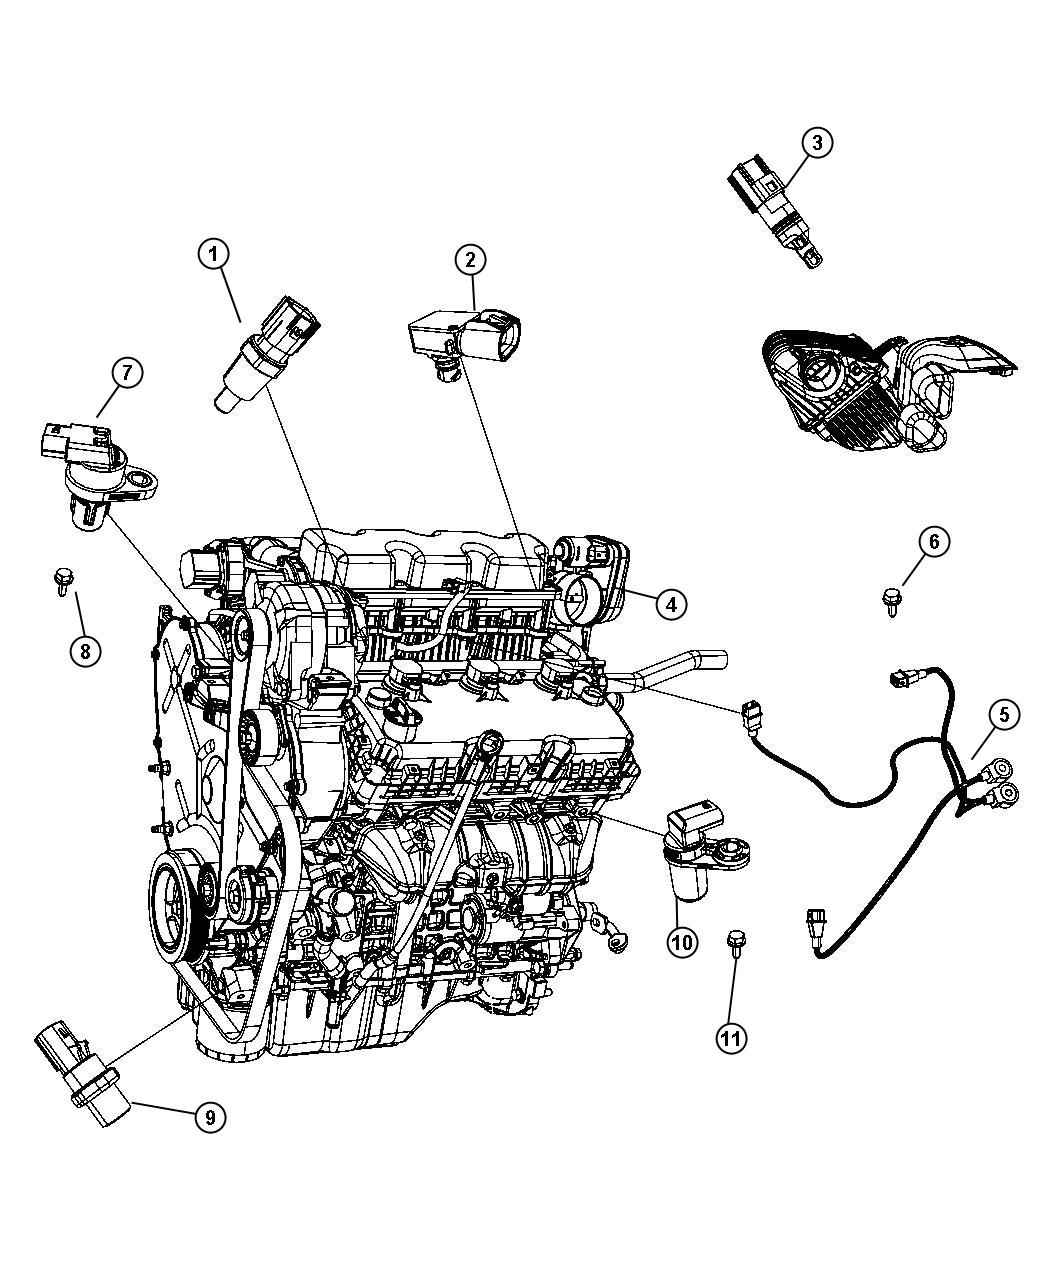 2005 Dodge Stratus 2 4l Engine Diagram. Dodge. Auto Wiring